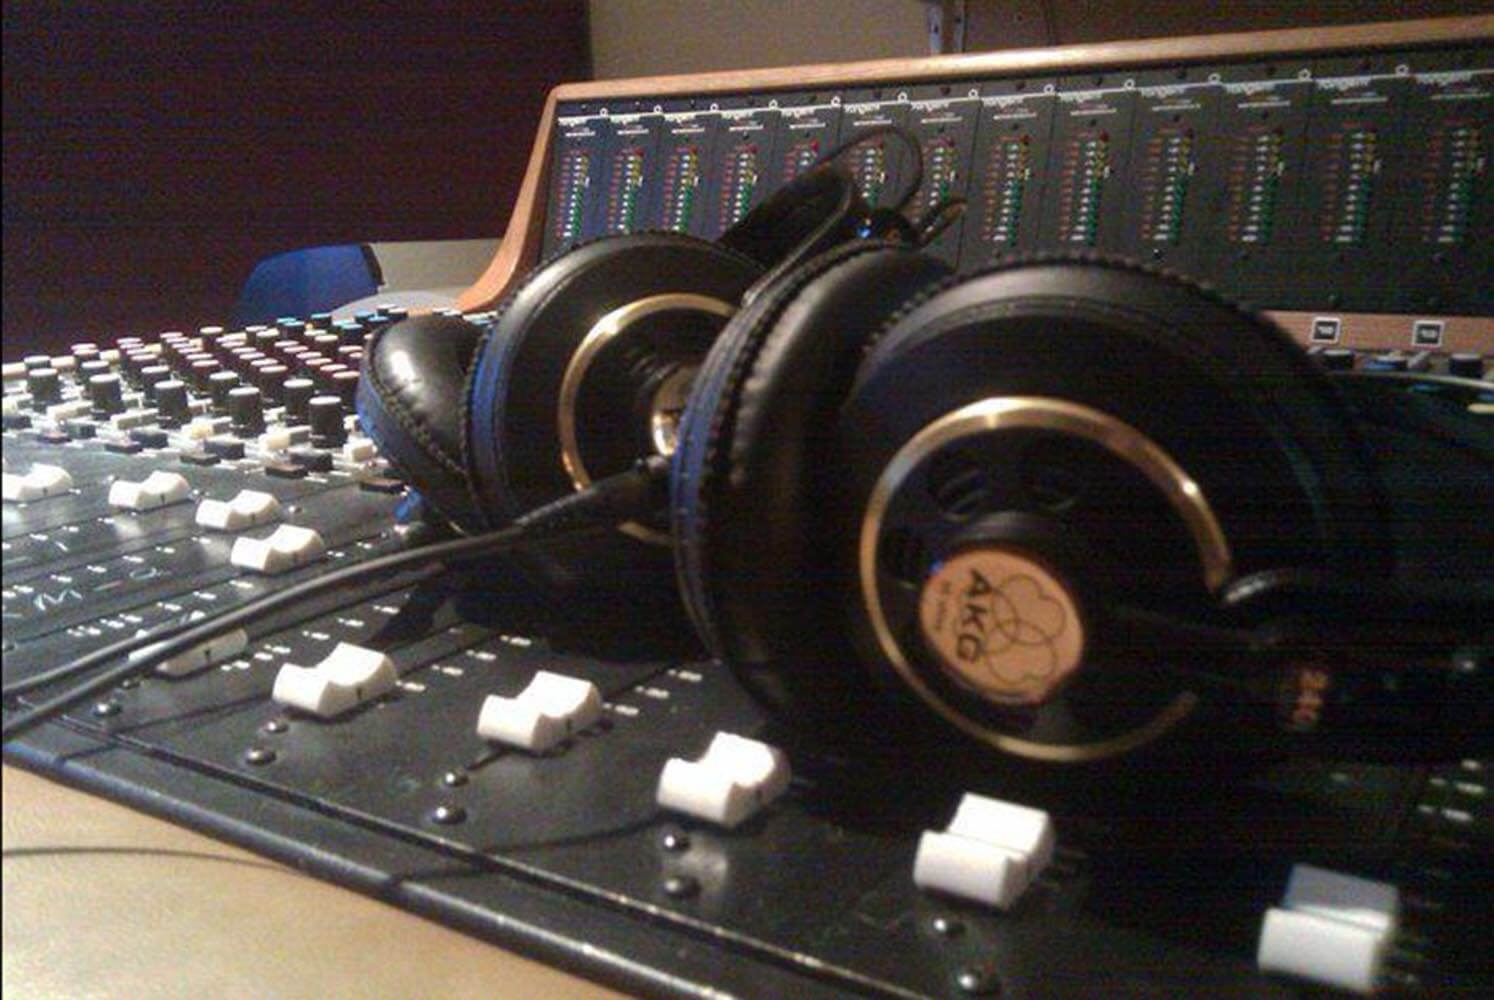 Gearheads' audio collection making tracks at local studio